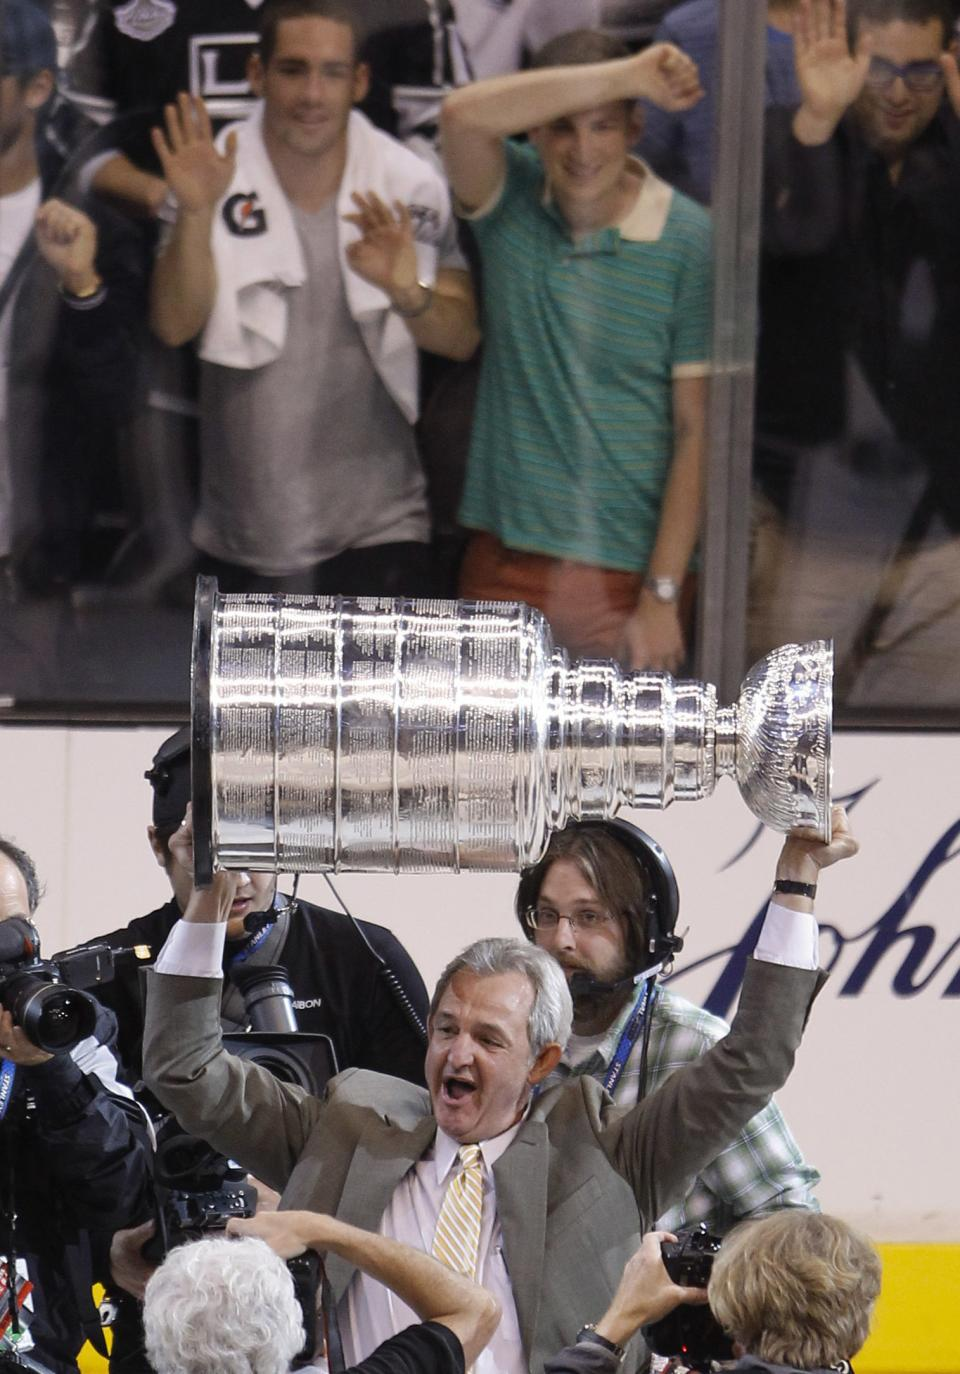 Los Angeles Kings coach Darryl Sutter hoists the Stanley Cup after beating the New Jersey Devils 6-1 during Game 6 of the NHL hockey Stanley Cup finals, Monday, June 11, 2012, in Los Angeles.  (AP Photo/Jae C. Hong)